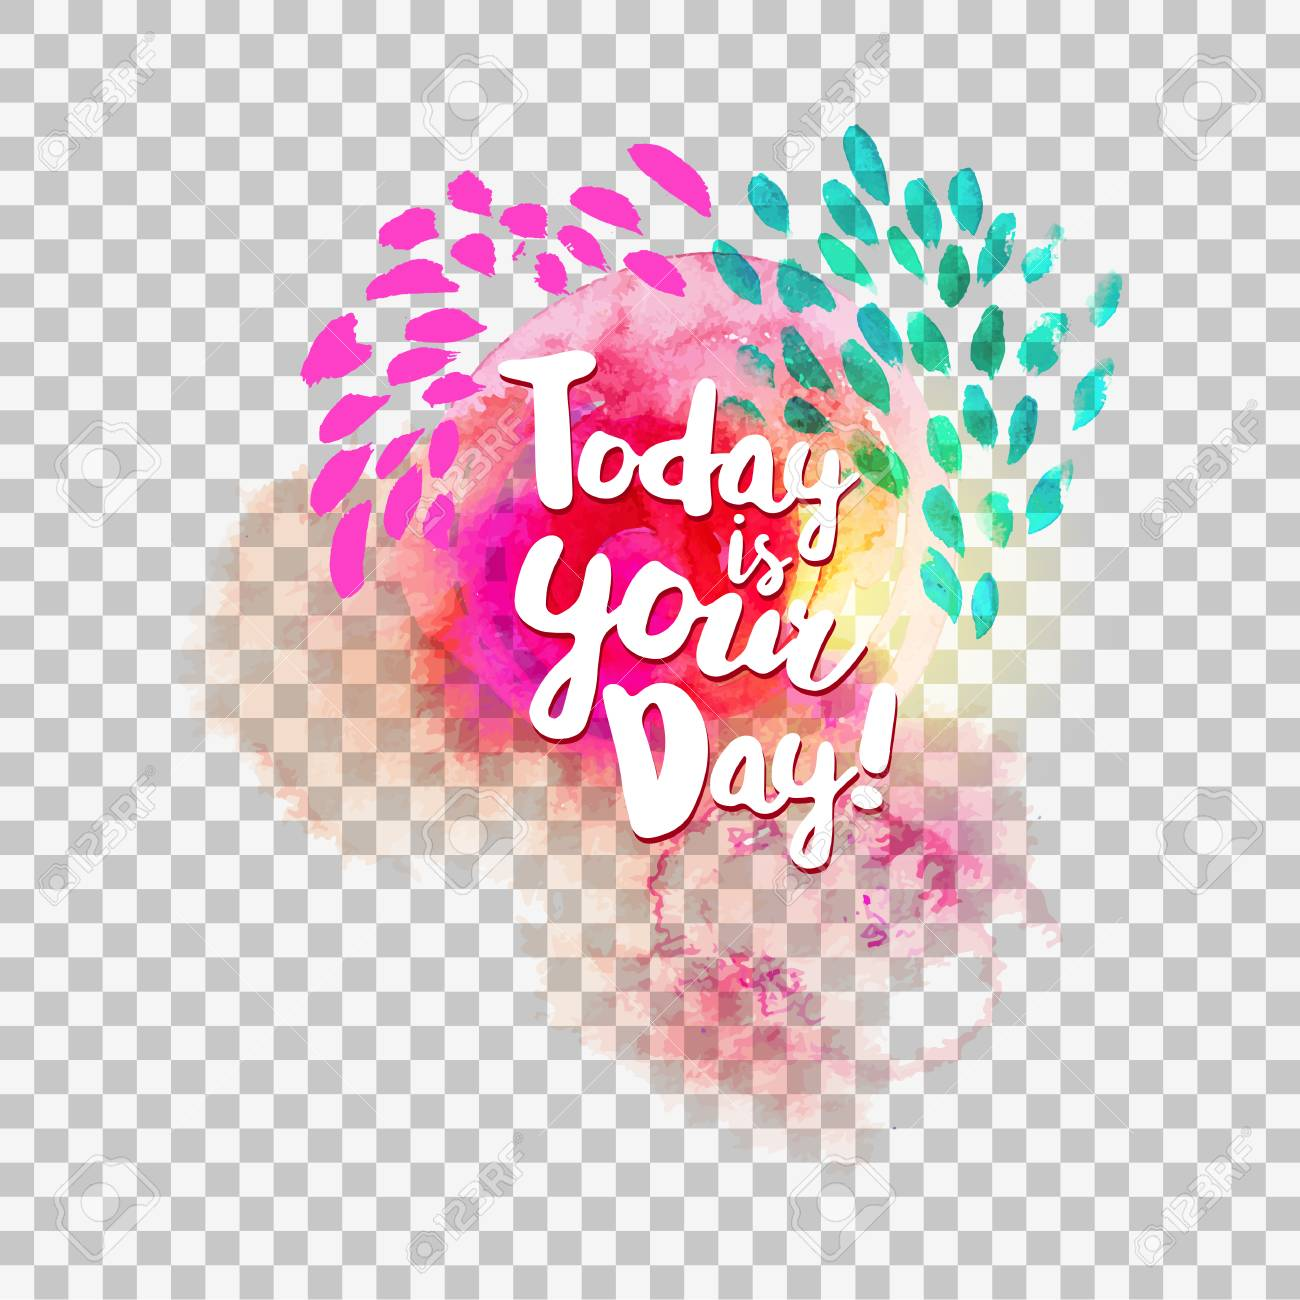 Today Is Your Daytypography At Watercolor And Transparent Background